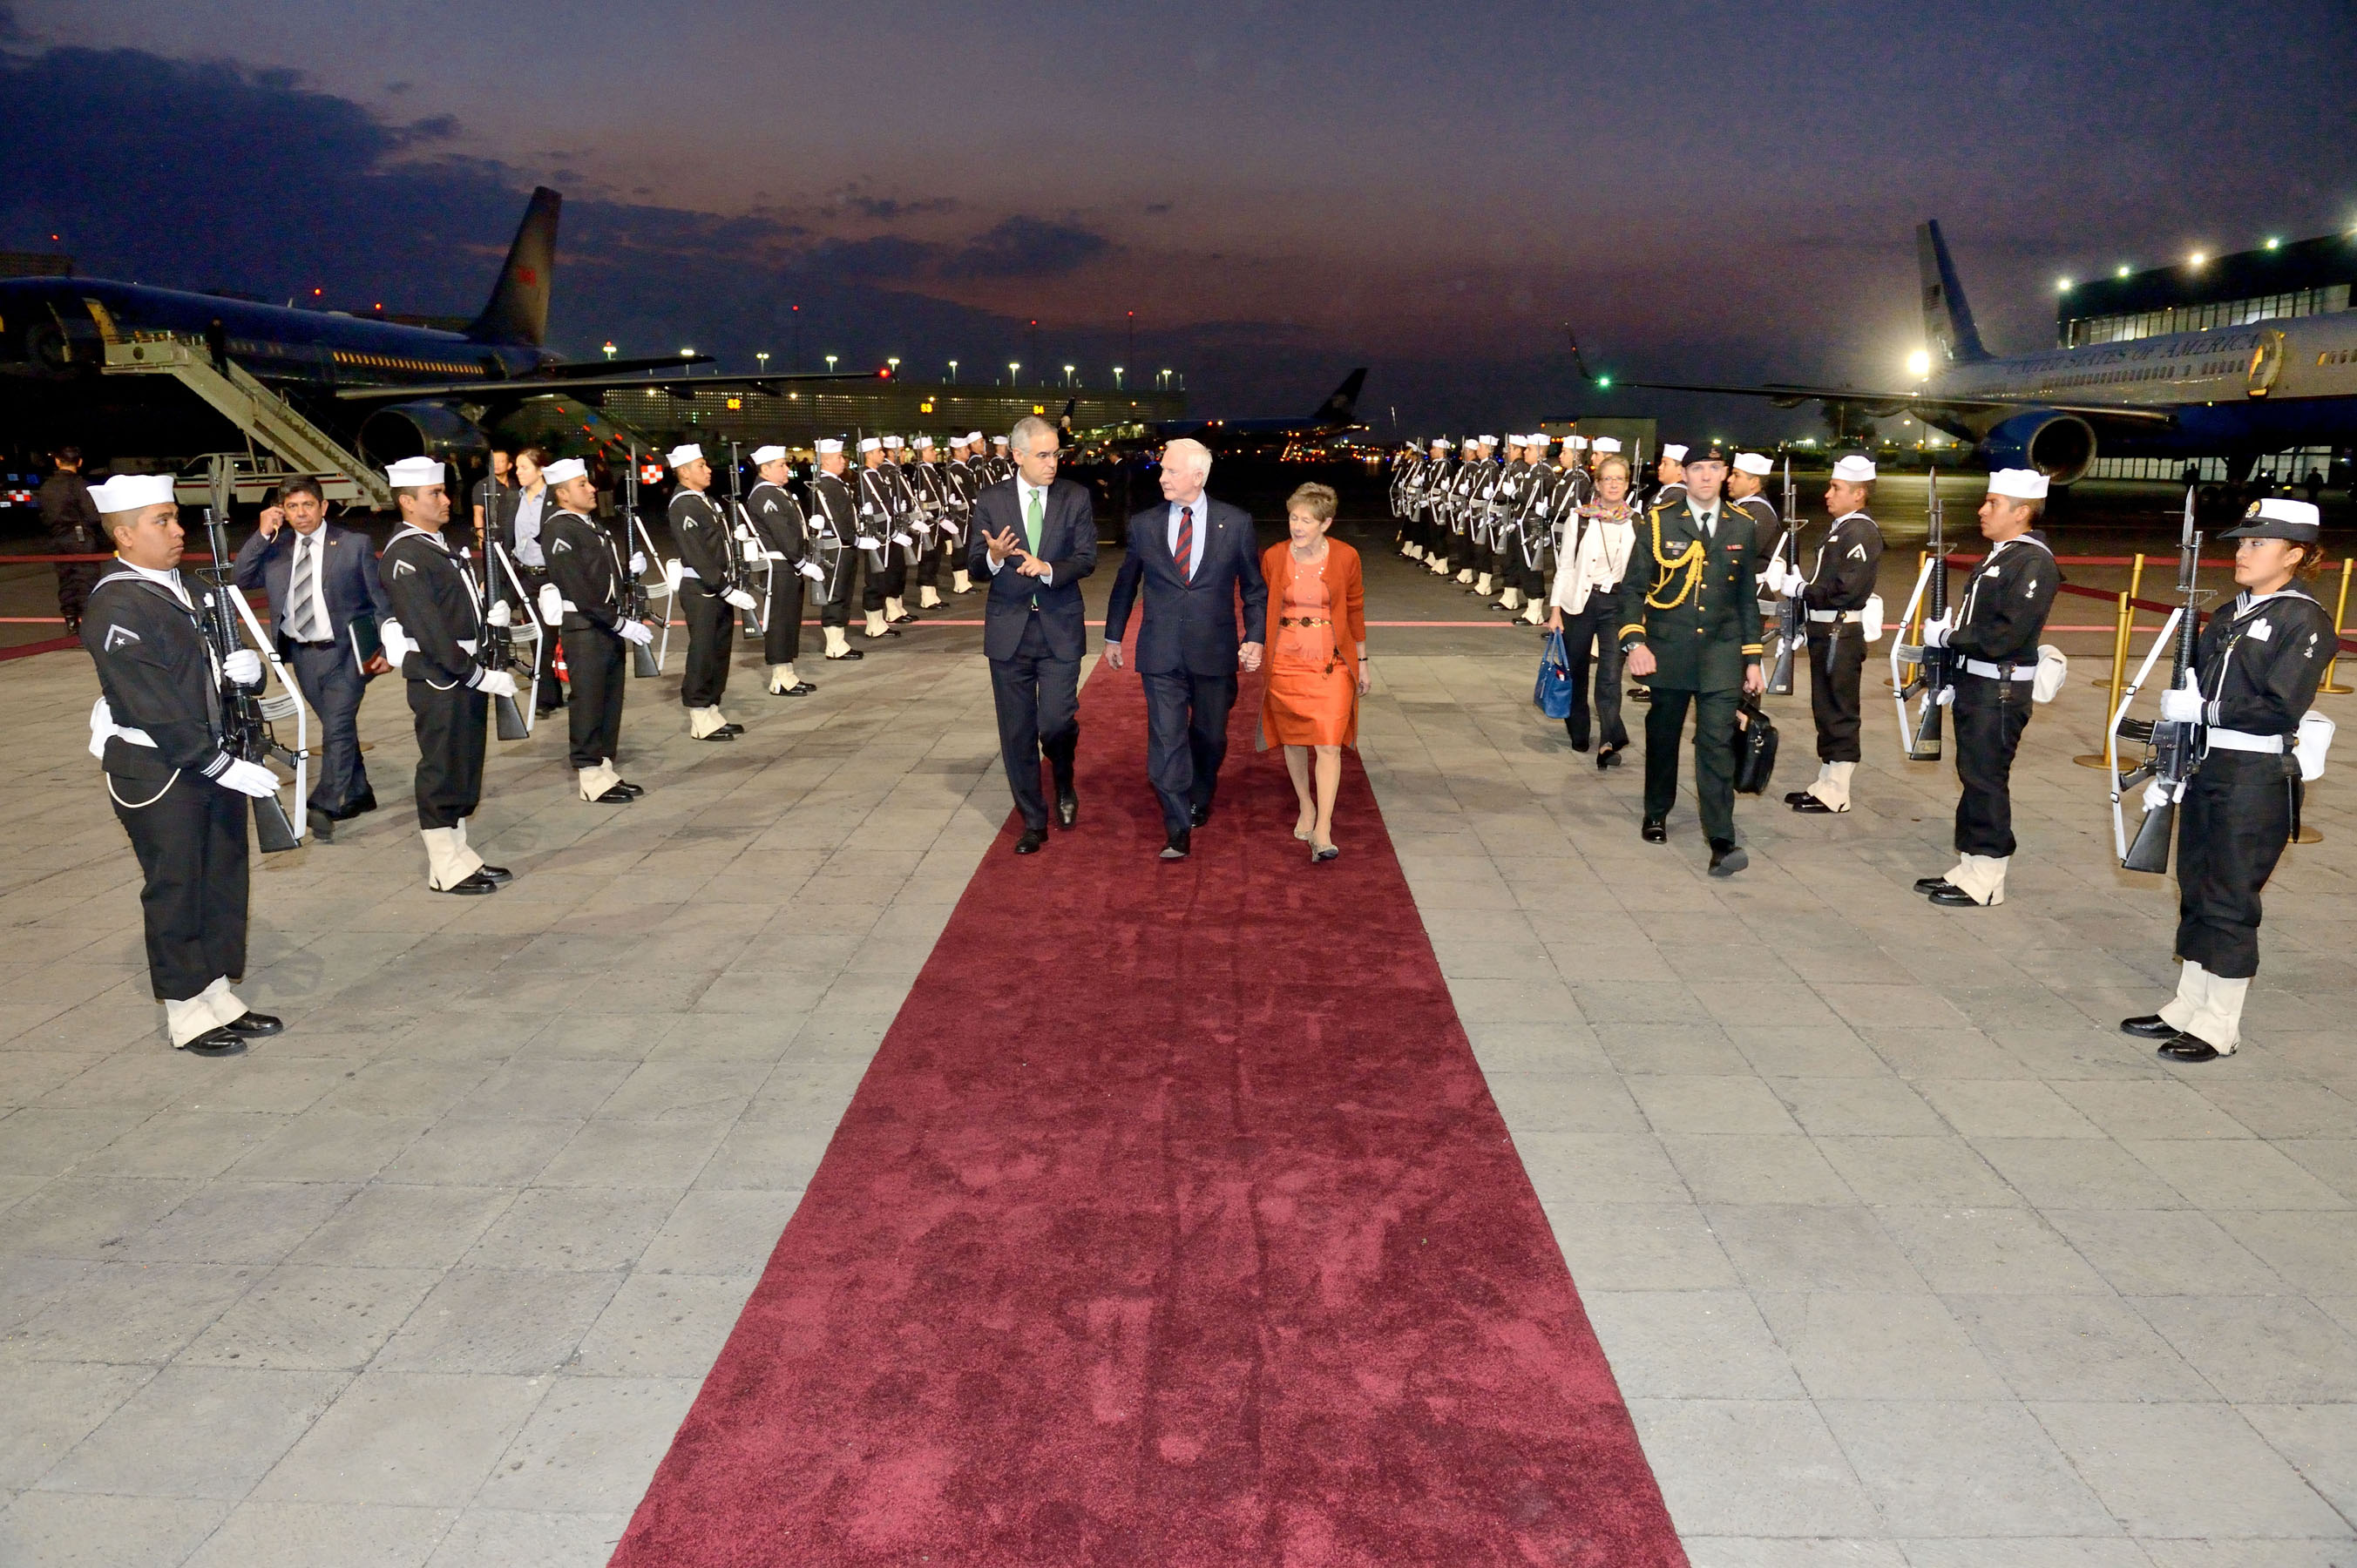 After Querétaro, Their Excellencies went to Mexico City.